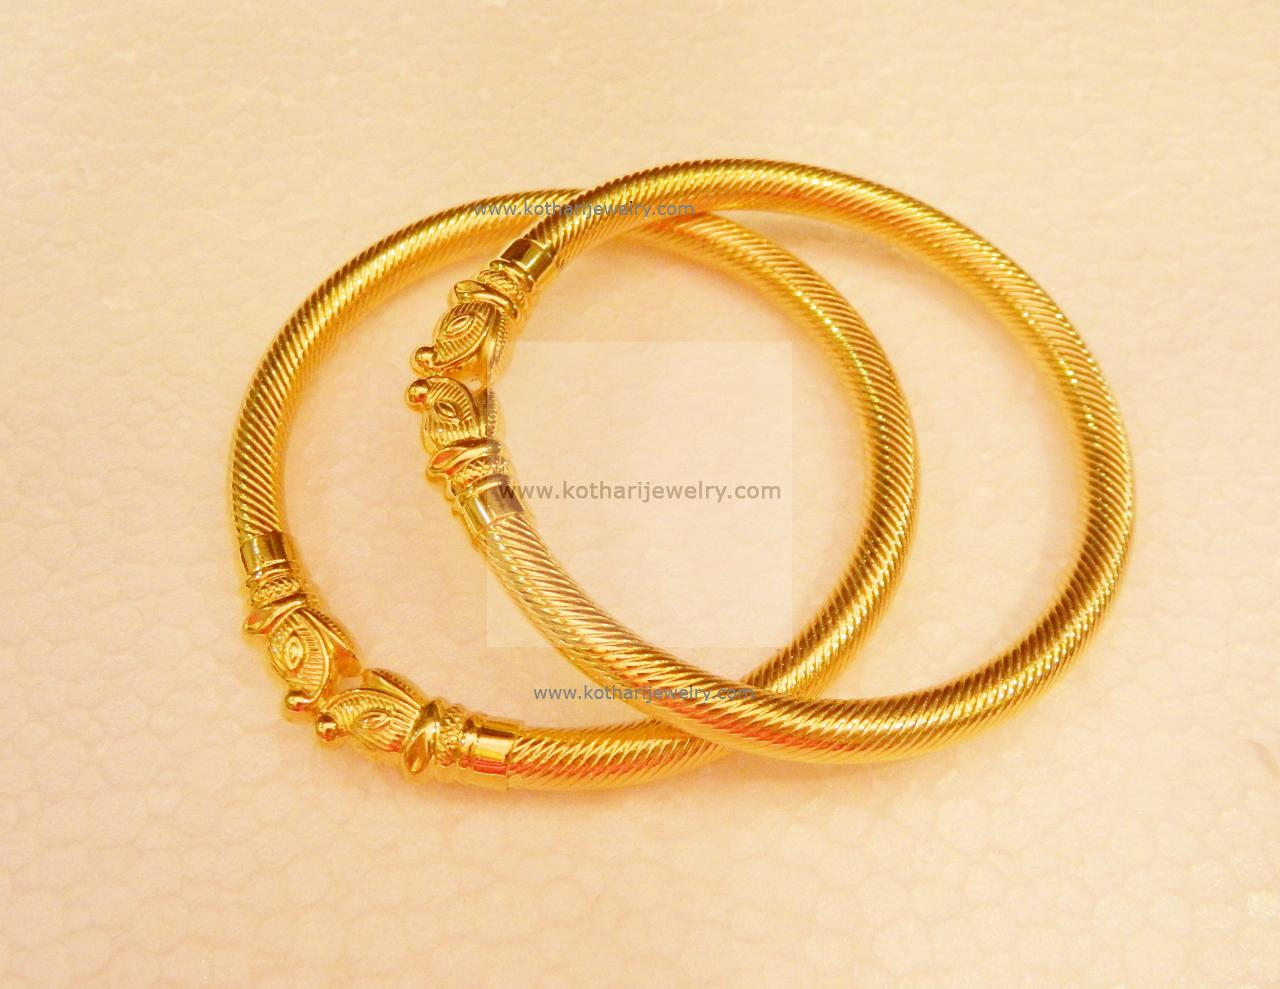 bangle product gold overstock bangles today free bracelets tricolor strand herringbone fremada shipping karat watches jewelry inch bracelet braided